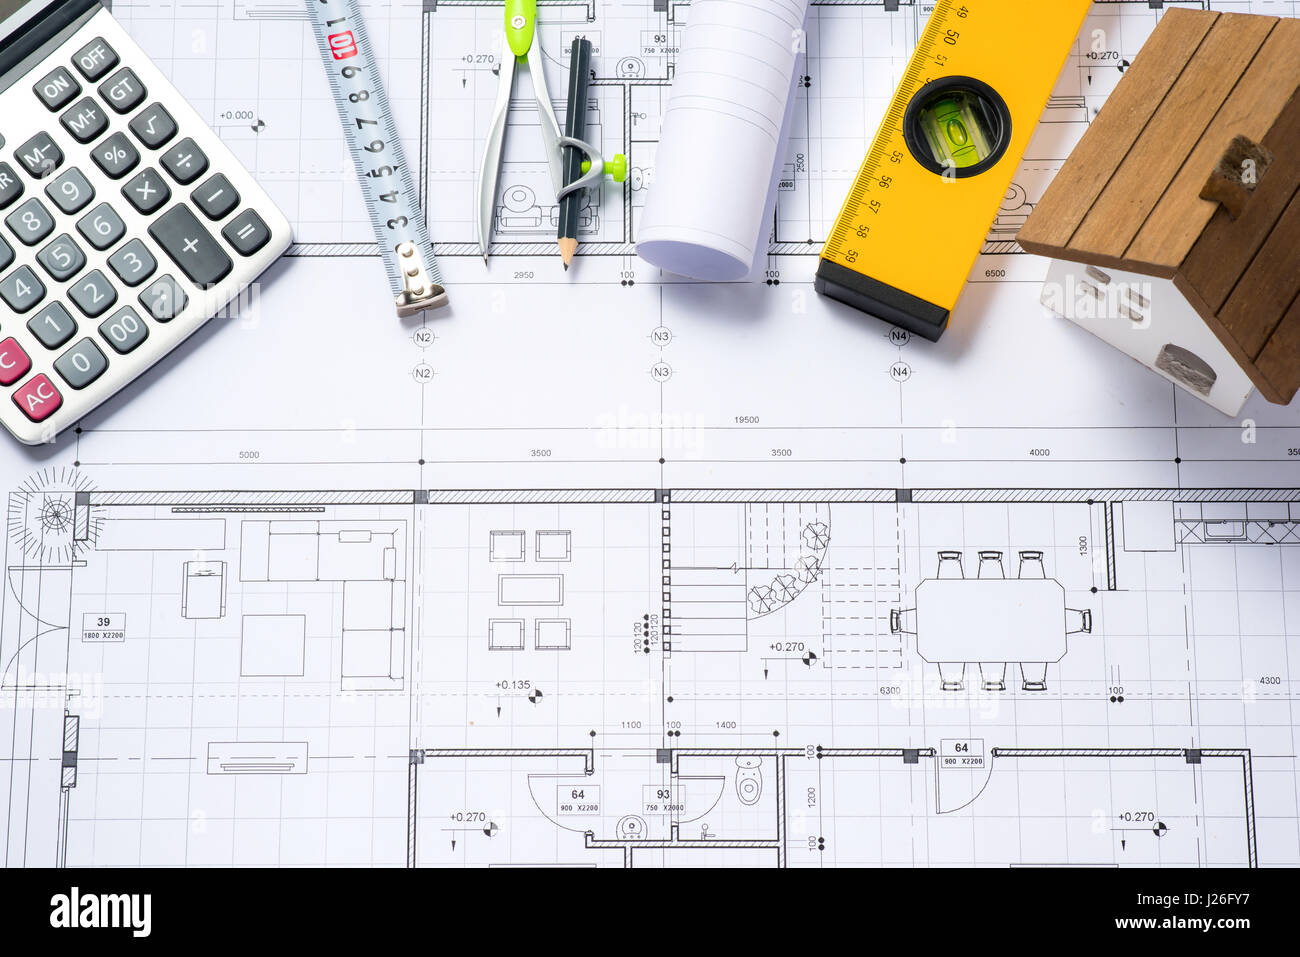 Costing stock photos costing stock images alamy for House plans with building cost estimates